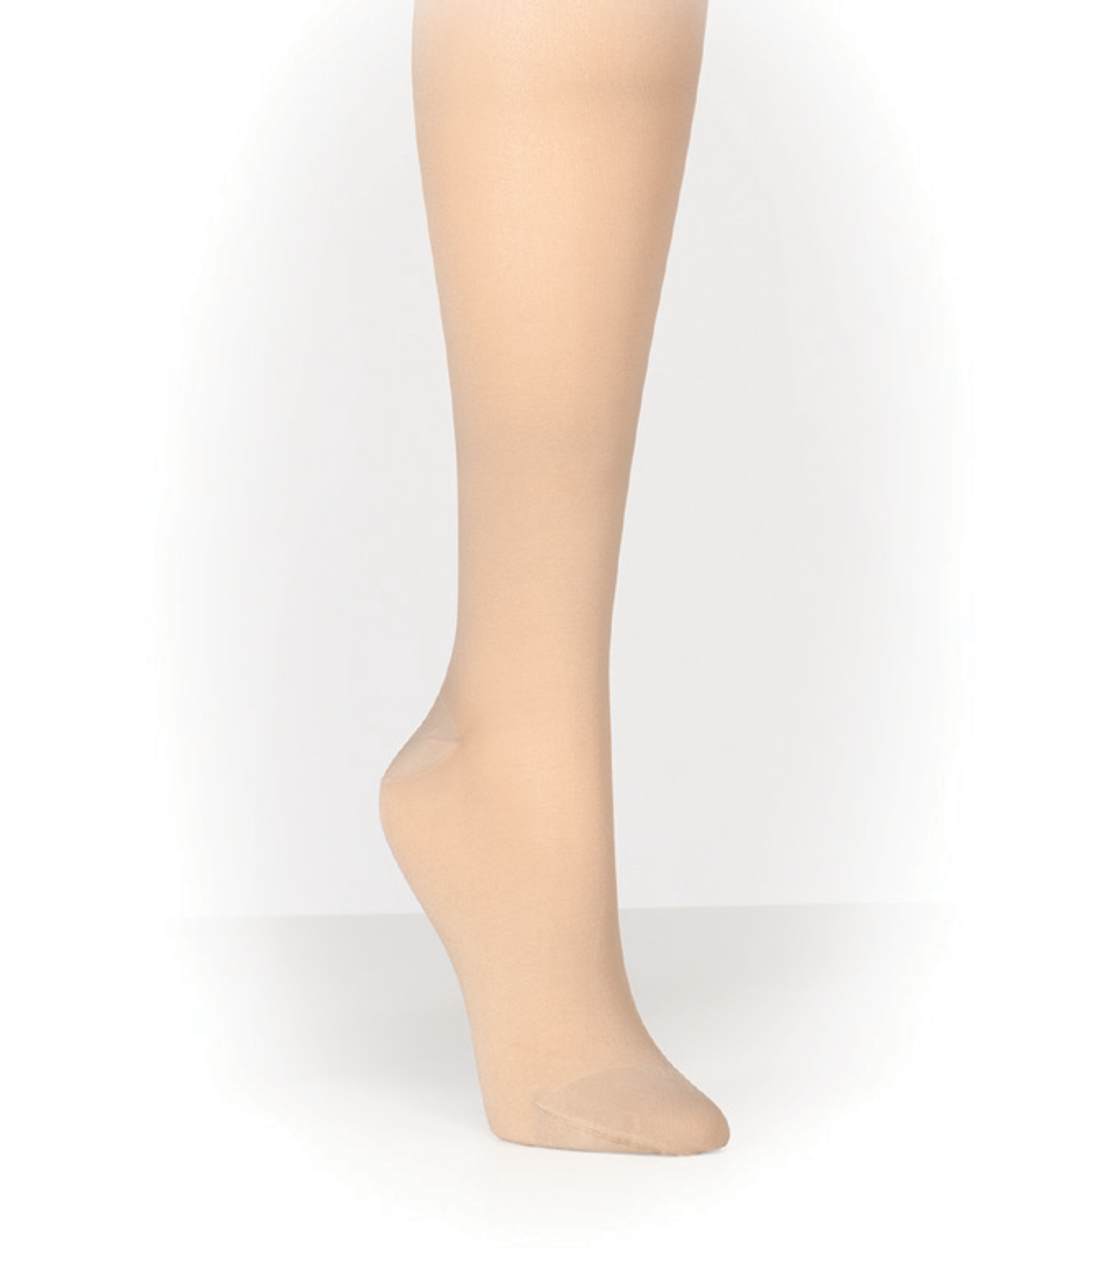 8c250f33fa5 Genext Women s Sheer Pantyhose Compression (15-20 mmHg) (GENCSS)